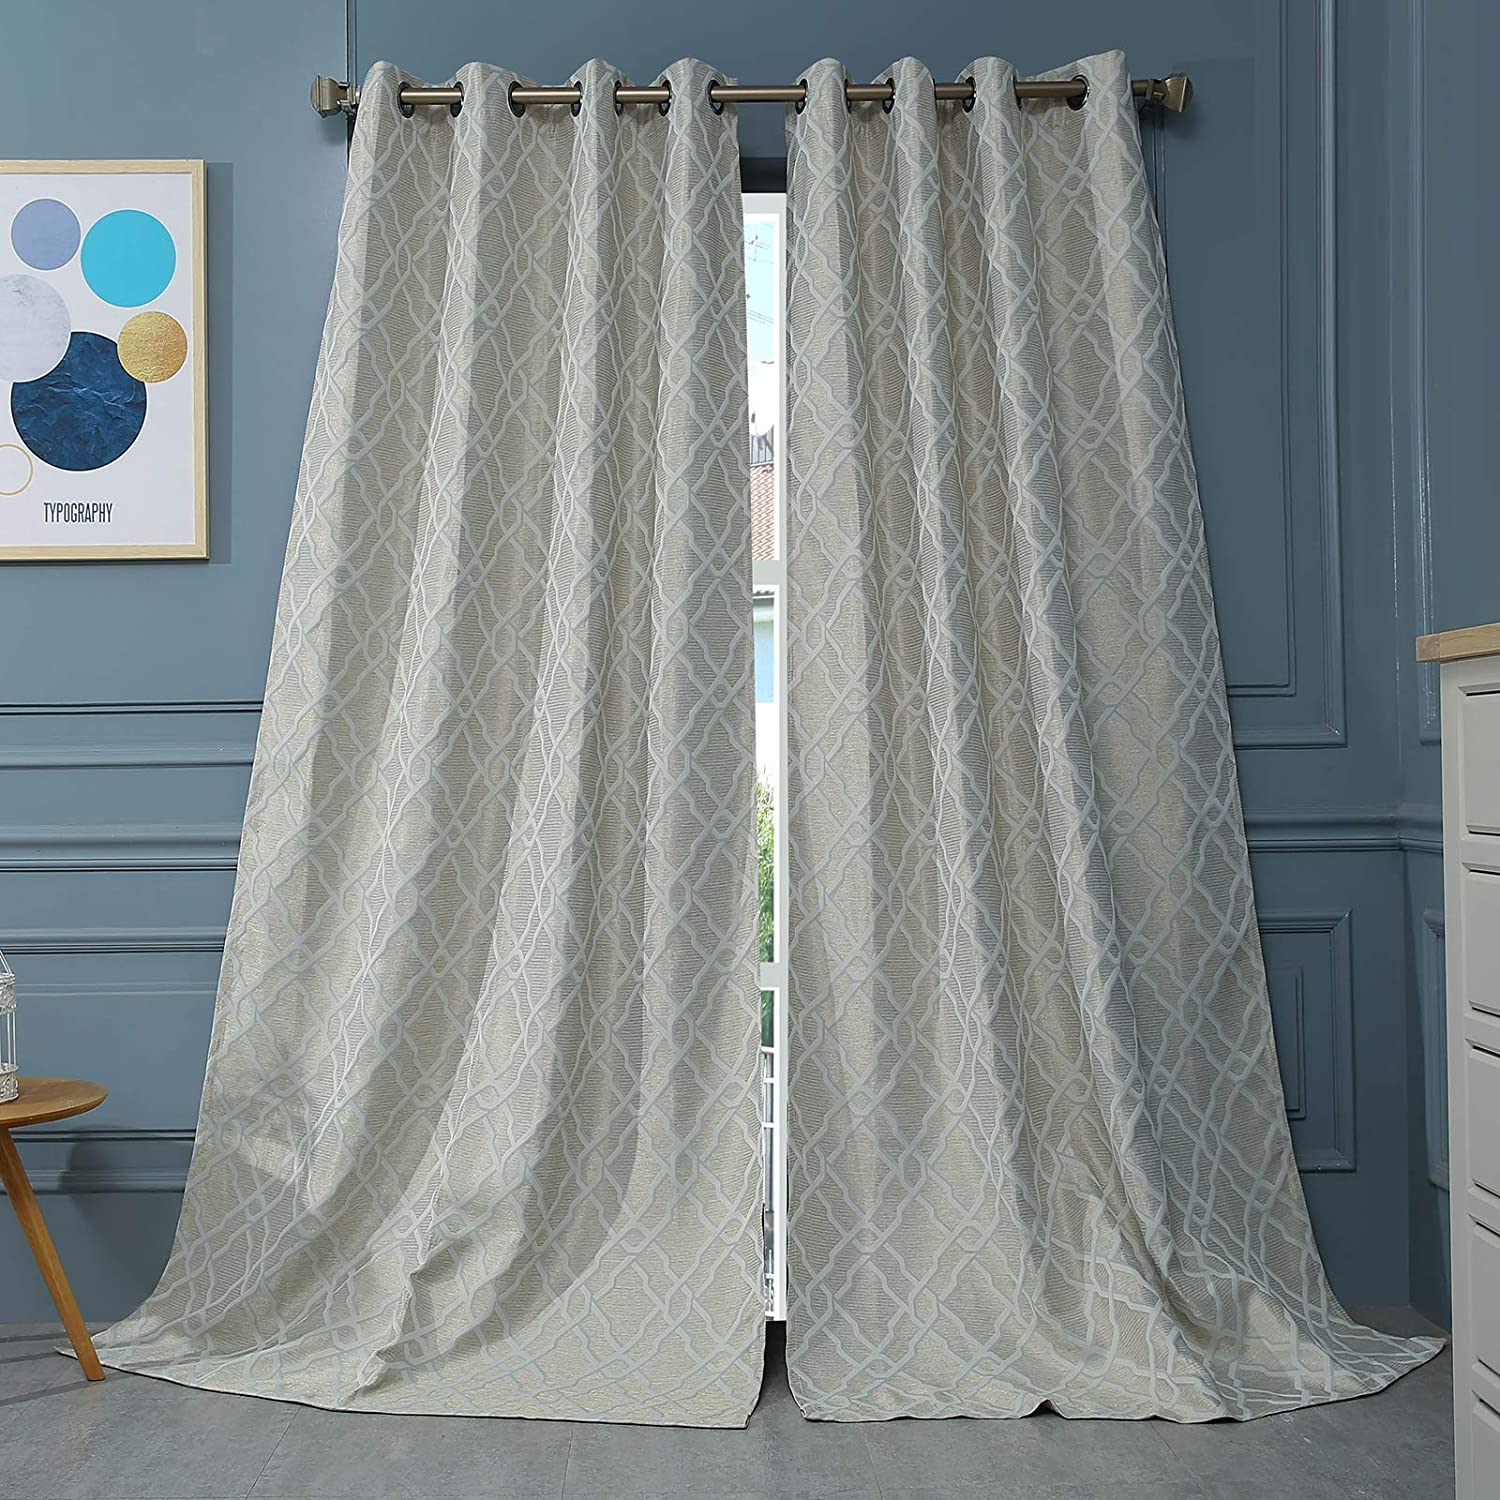 MODERNOVIA 52x95 inch Champagne Room Darkening Curtain Grommet Pattern Drape for Living Room and Bedroom Thermal Insulated 2 Panels